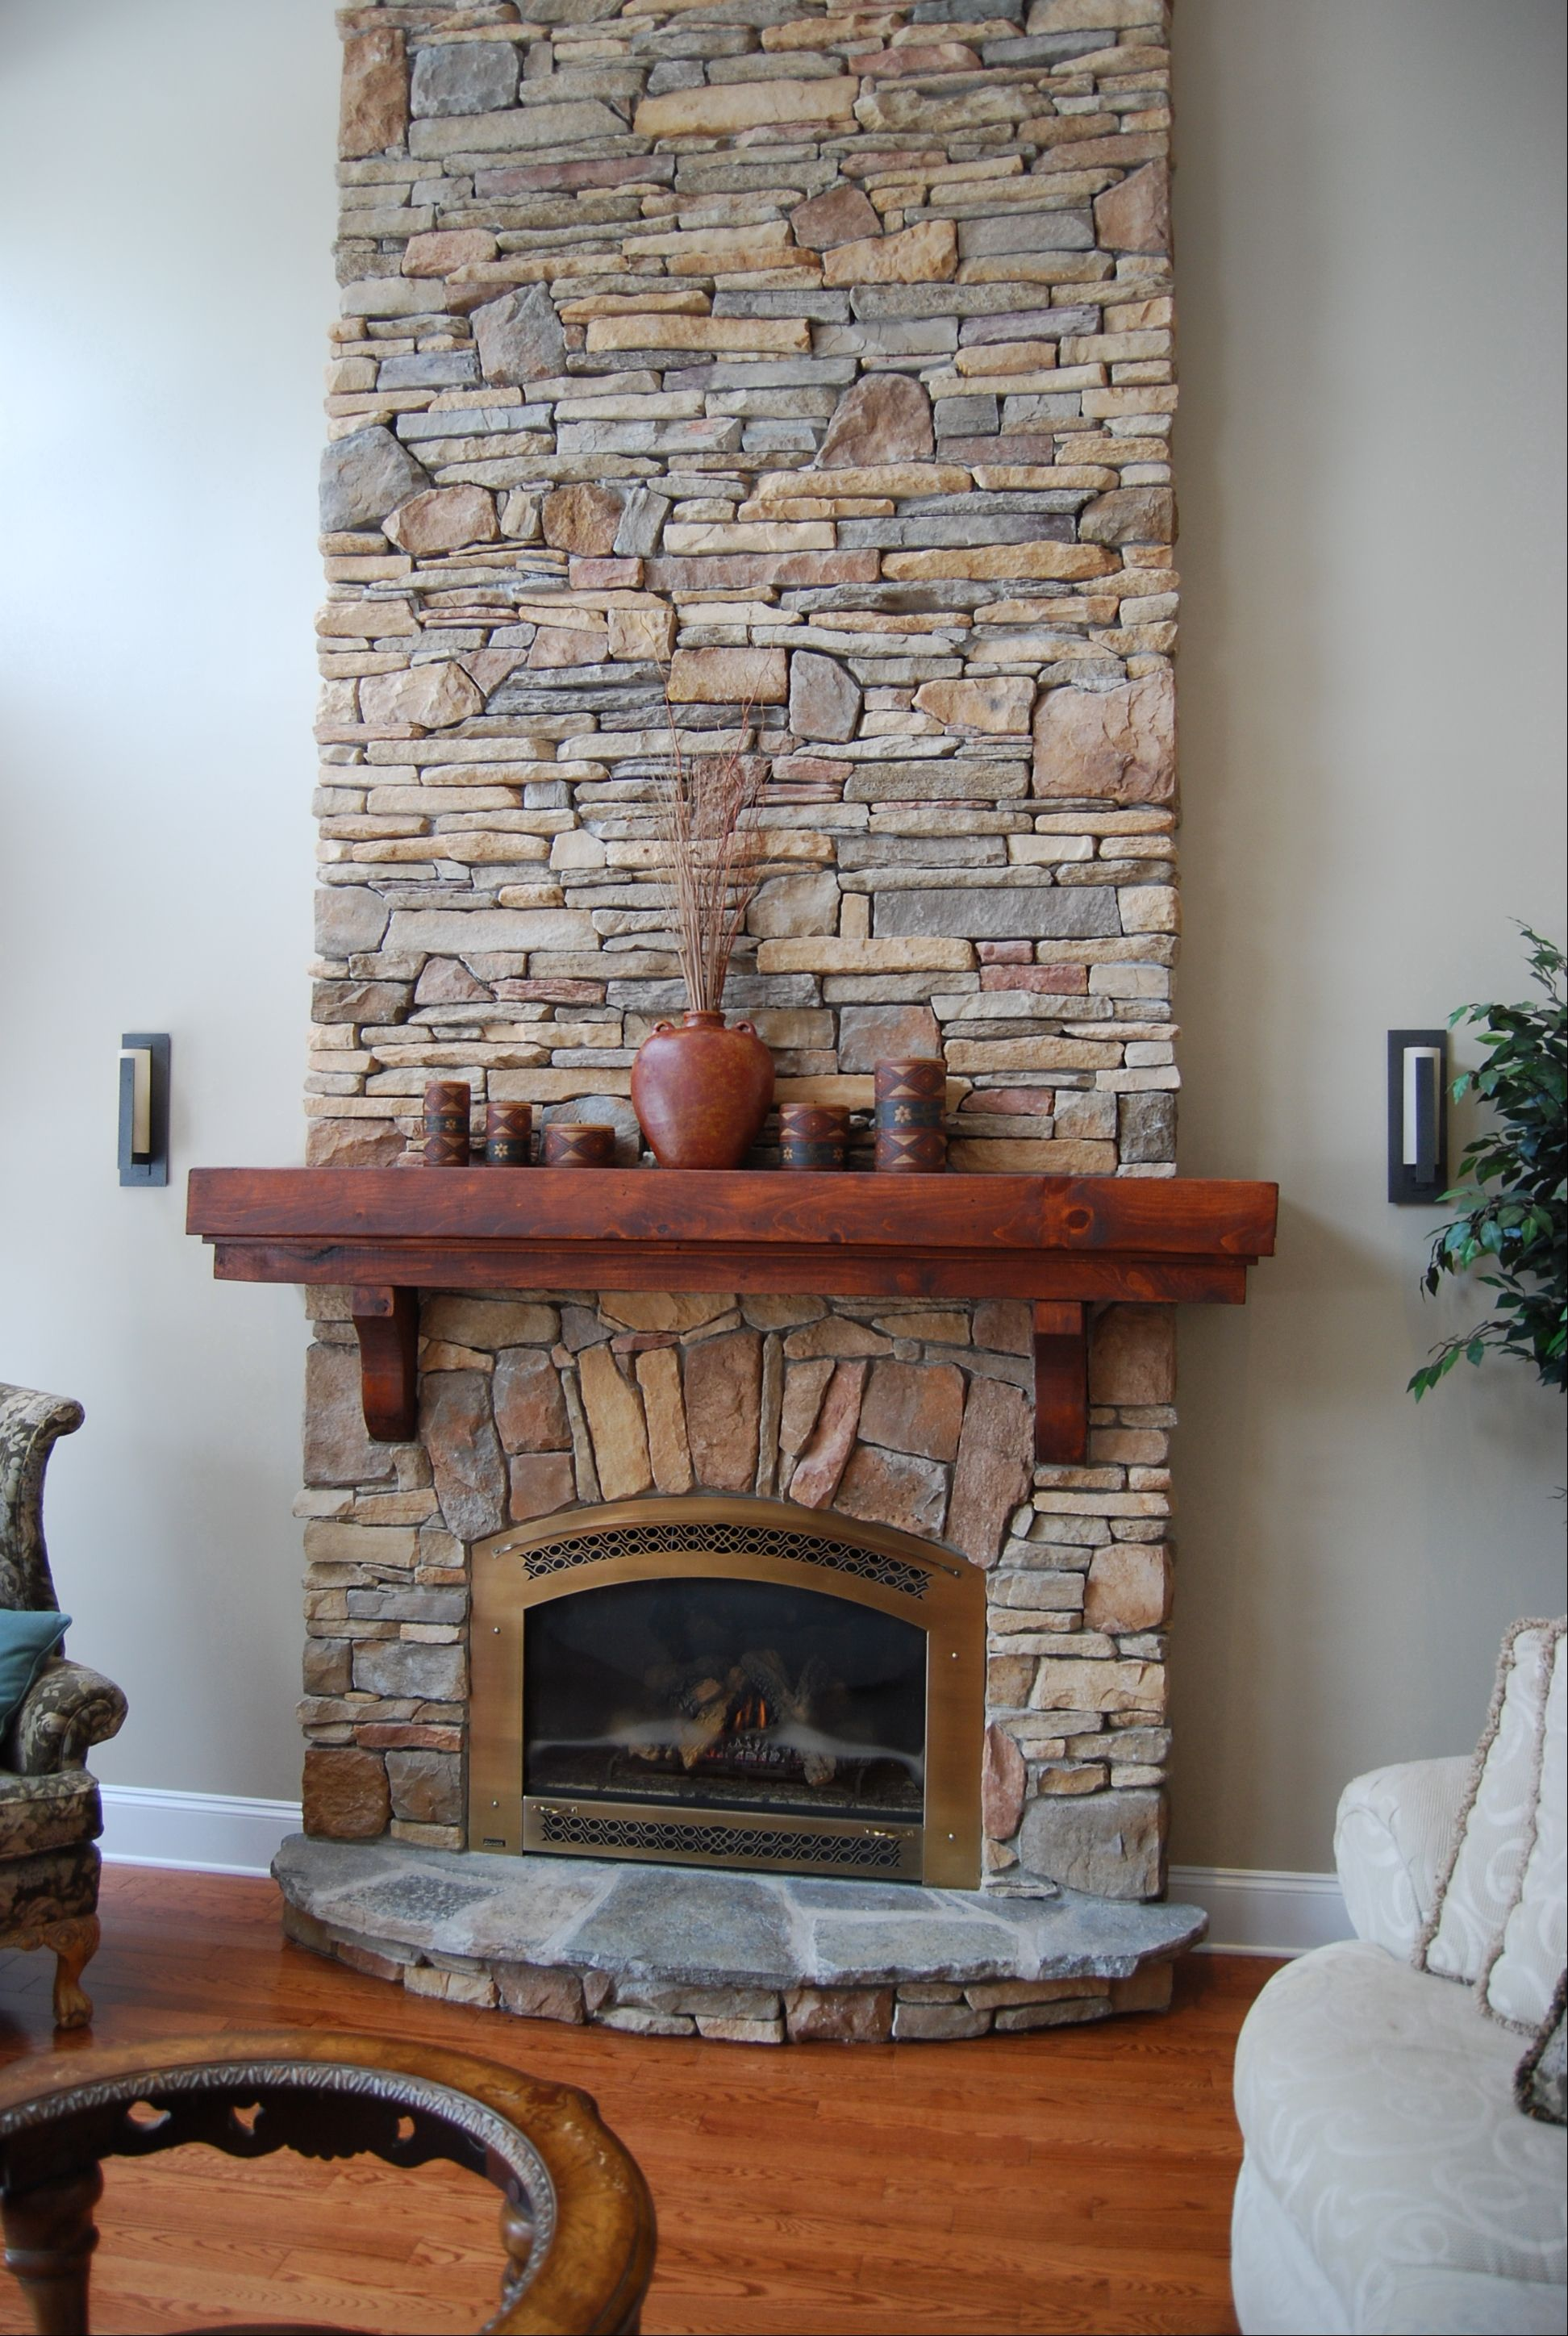 Cultured stone fireplace surround - Elegant Fireplace Done With Cultured Stone Rustic Southern Ledgestone And Natural Stone Hearth With Stone For Fireplace